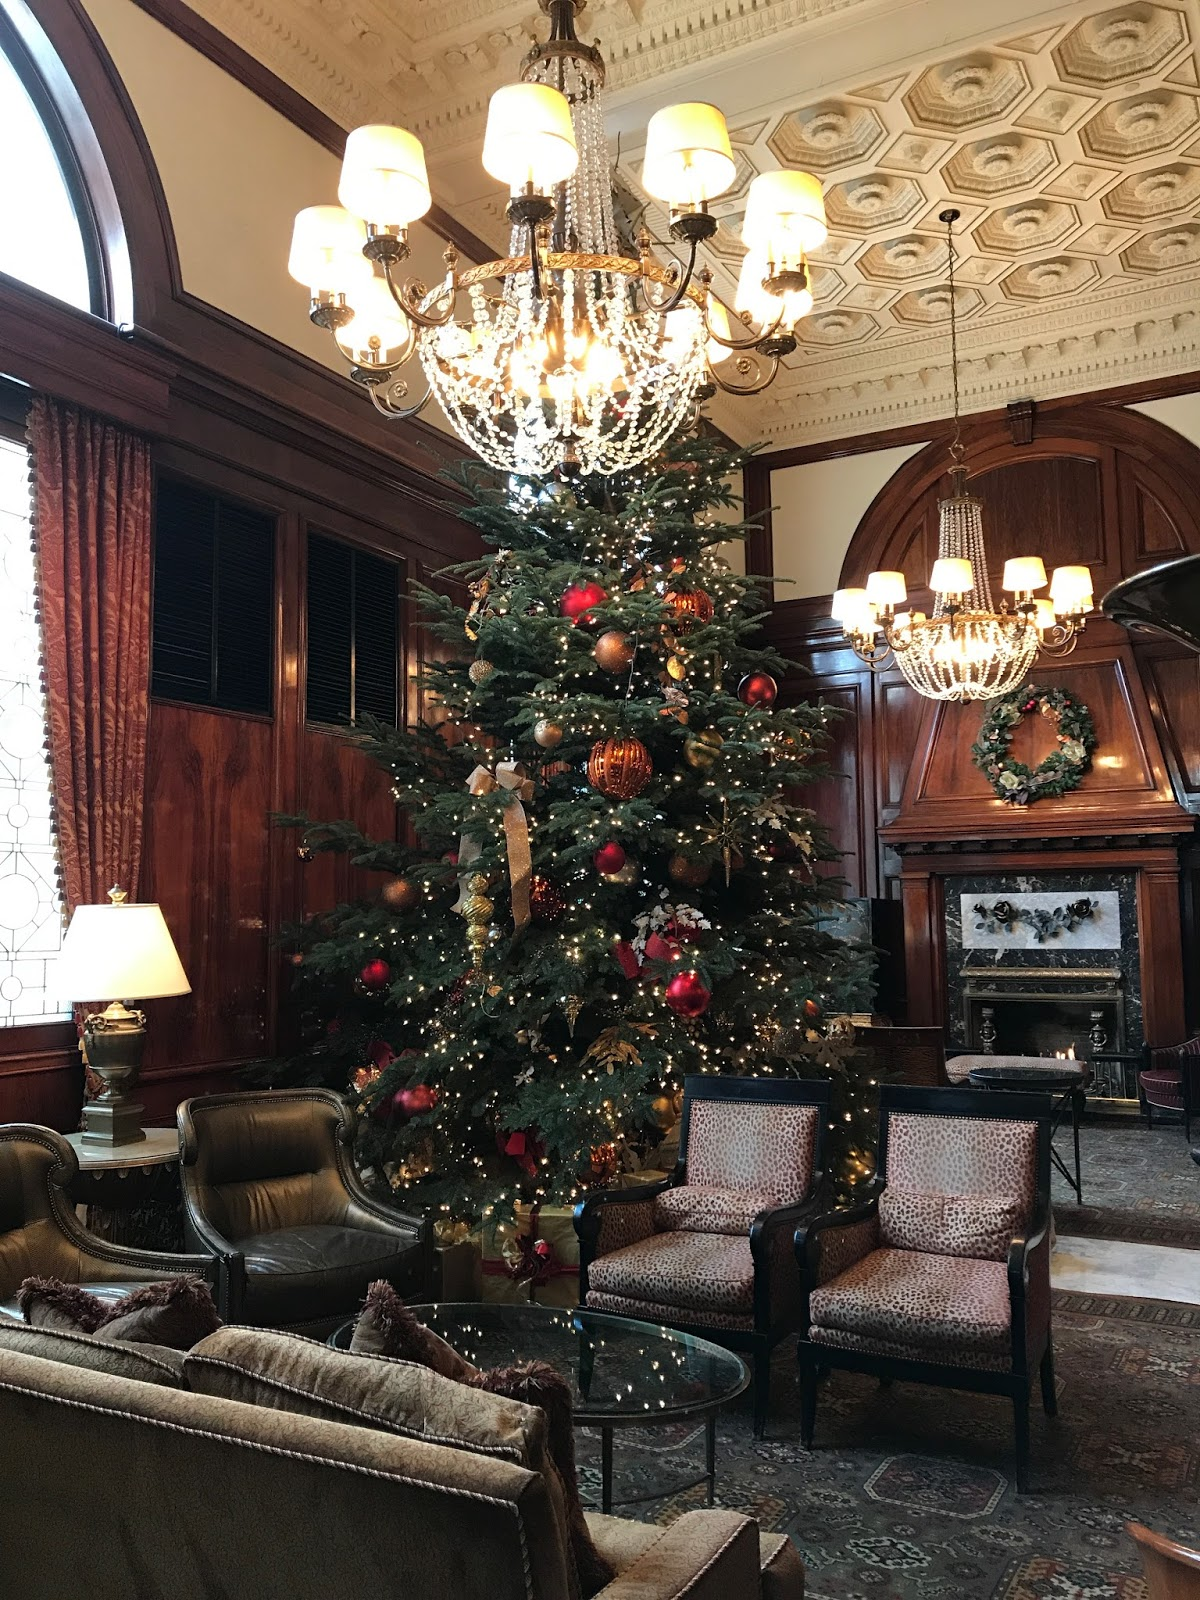 Travel Writer Rants And Raves: Portland Oregon: Exploring The Downtown Christmas  Decorations